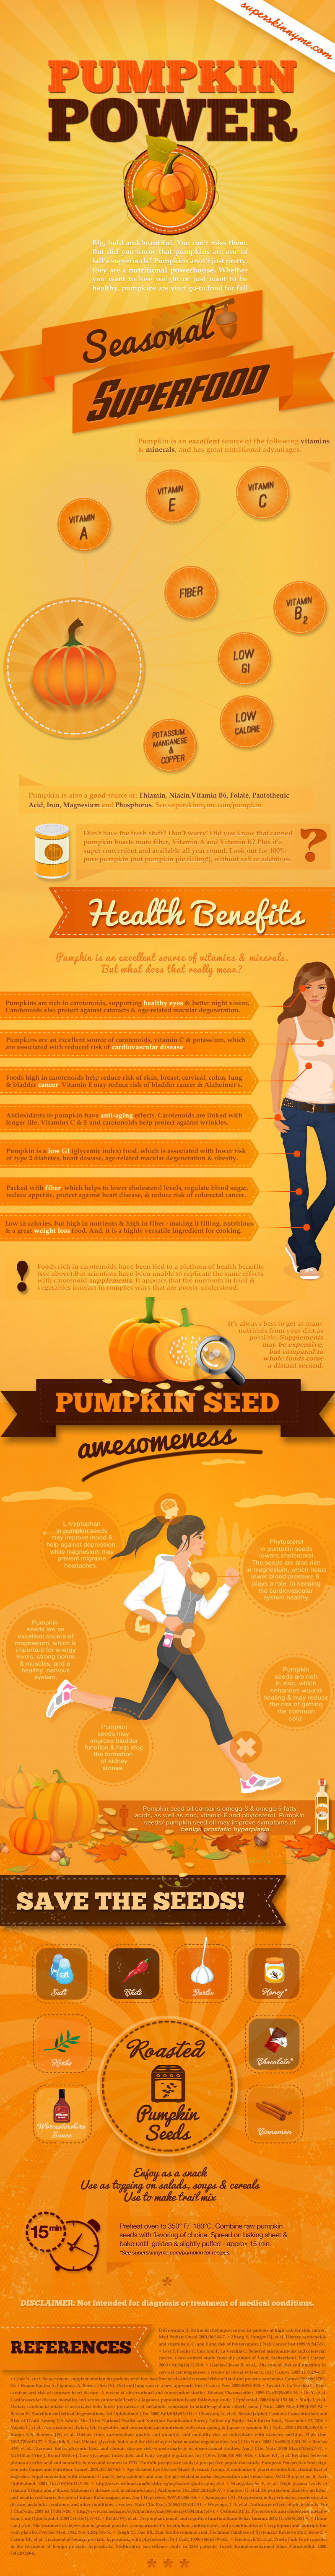 12 Pumpkin Benefits Infographic